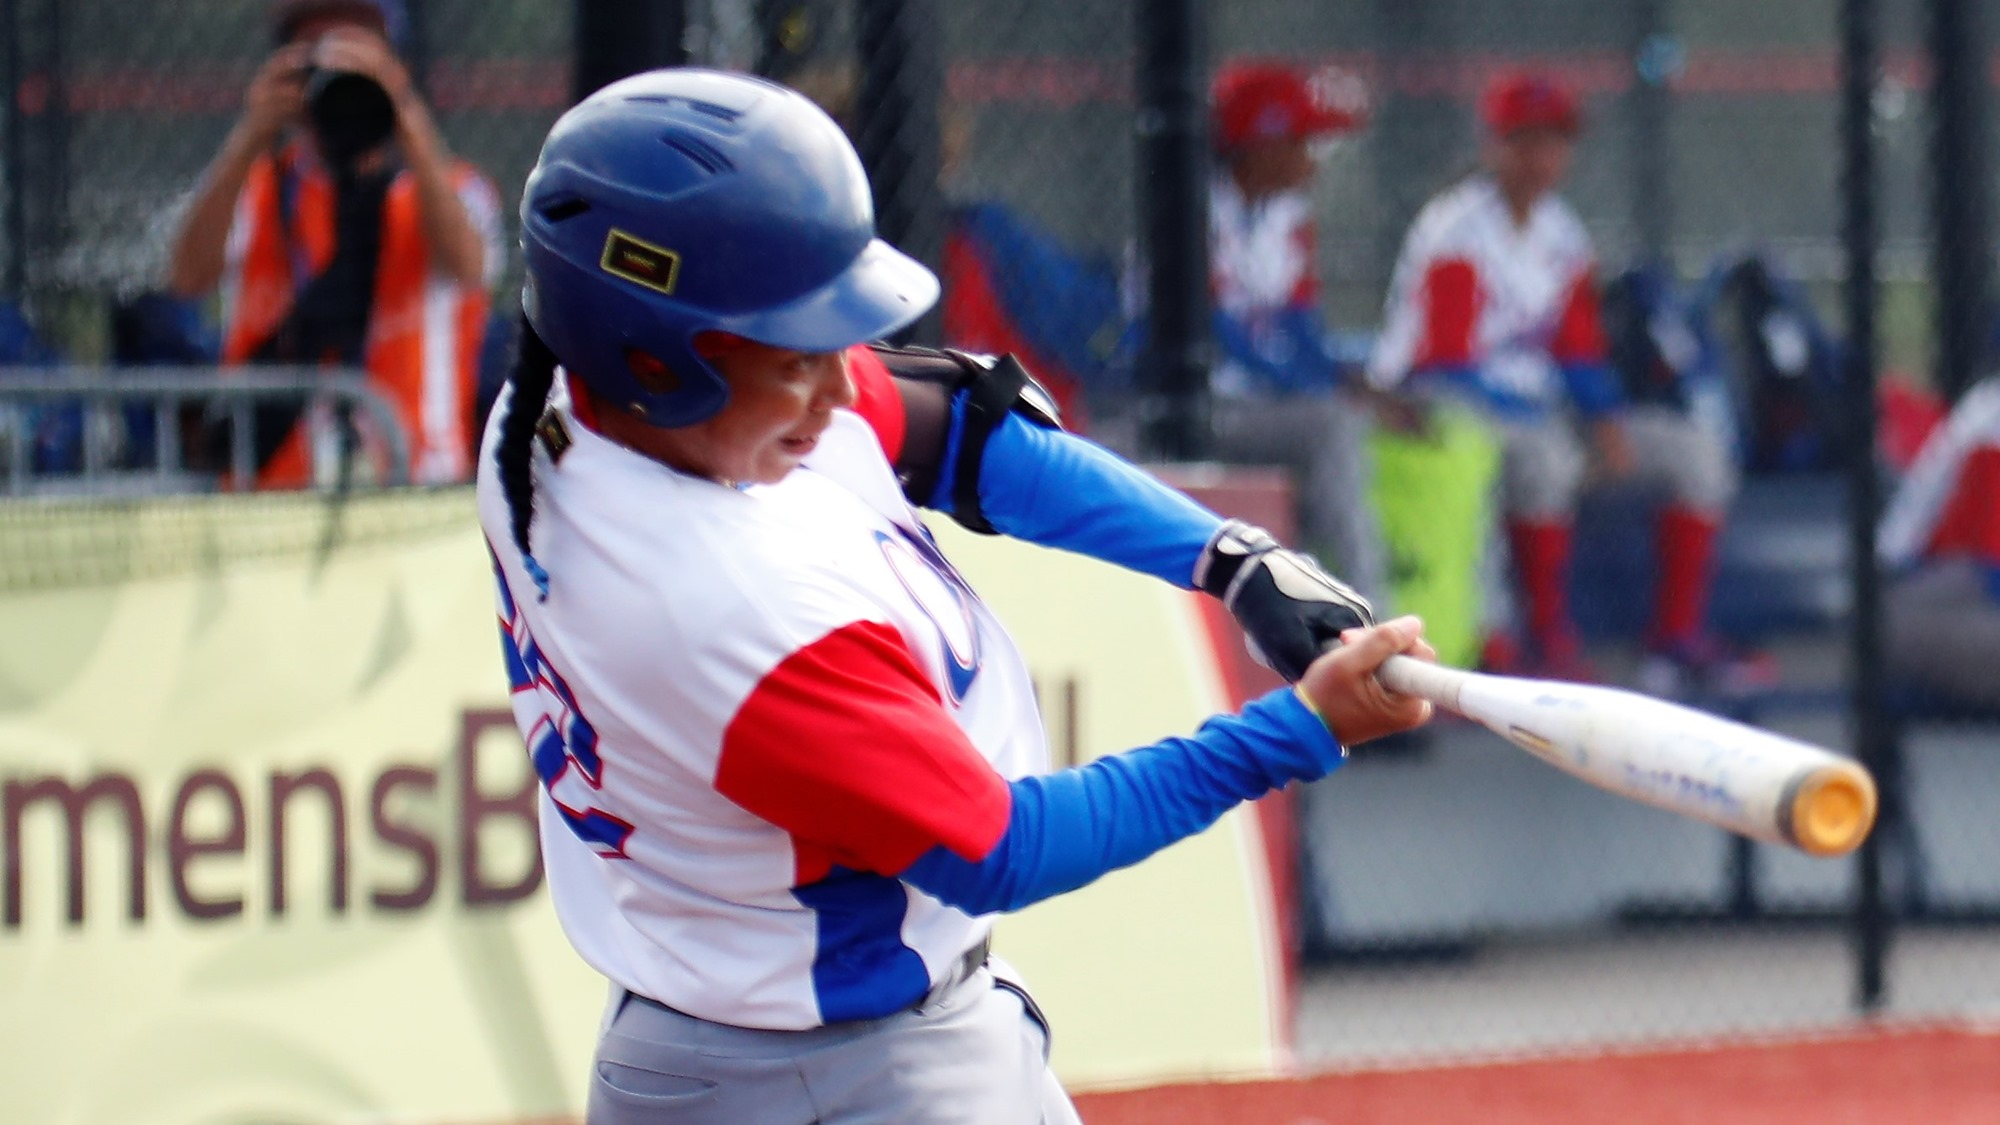 Cuba outscored The Netherlands in the first game of Day 2 in the consolation round